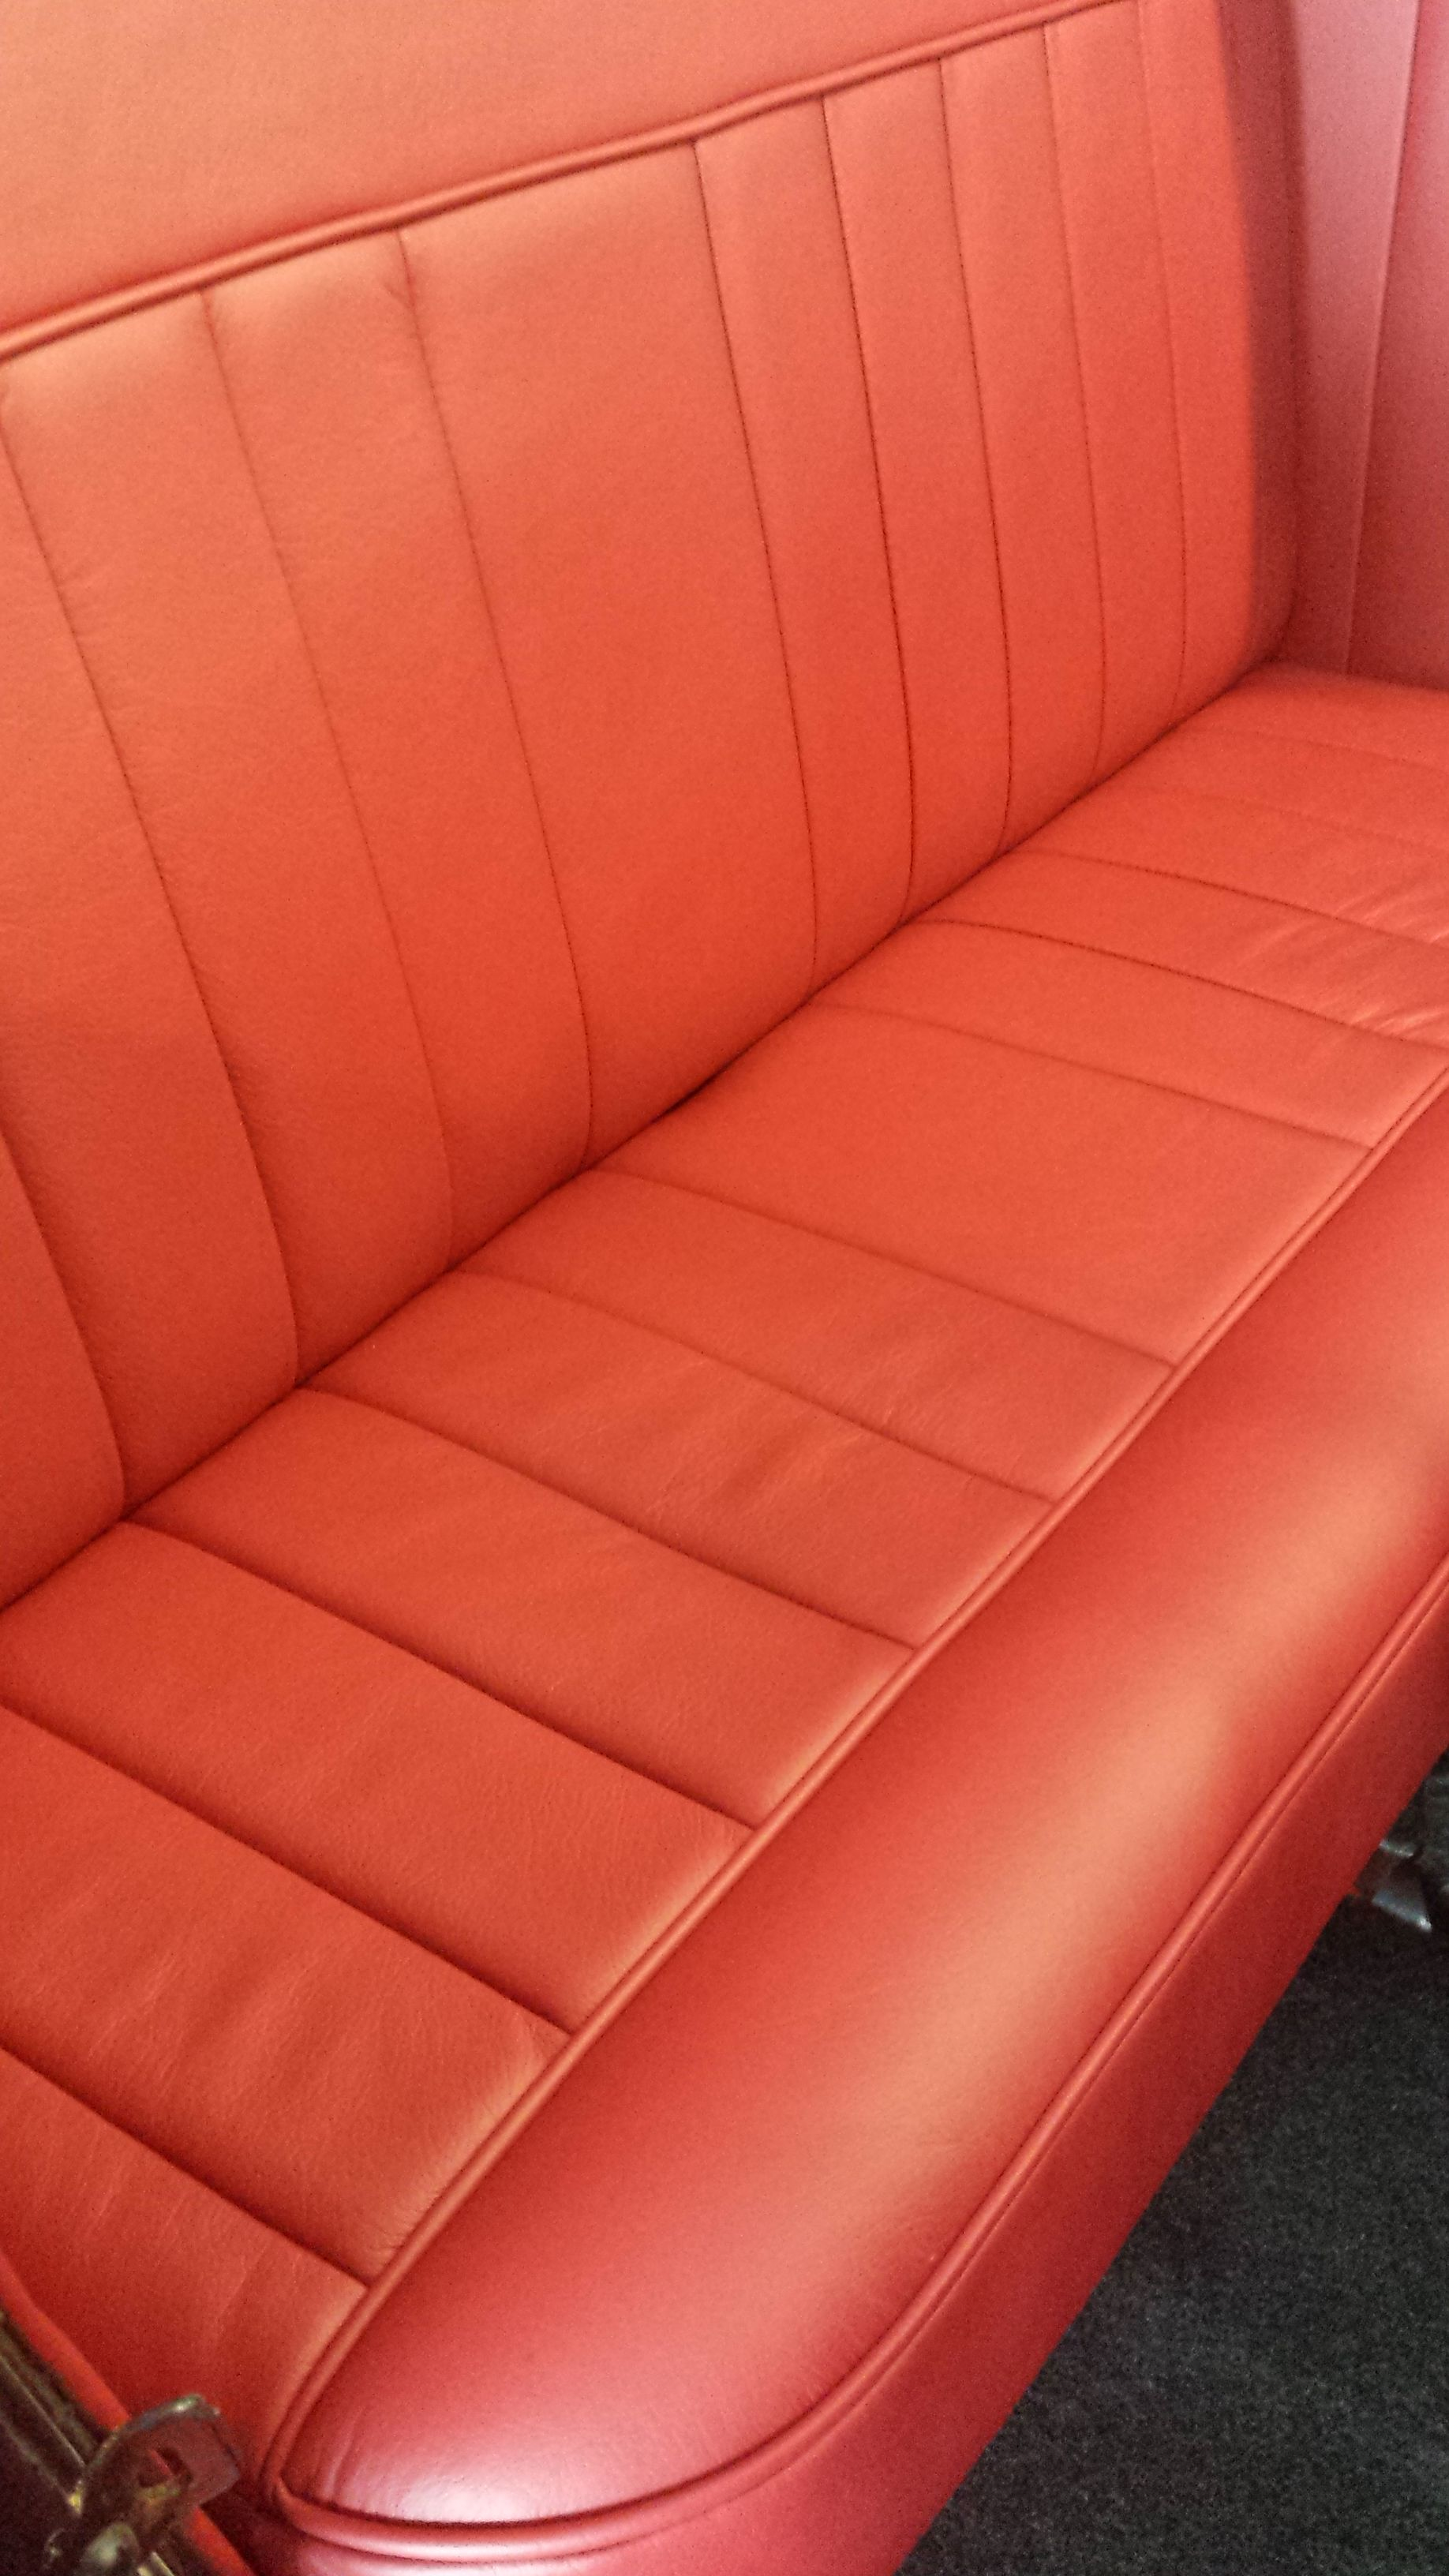 Pleasant Model A Ford Custom Built Red Napa Leather Bench Seat Side Onthecornerstone Fun Painted Chair Ideas Images Onthecornerstoneorg